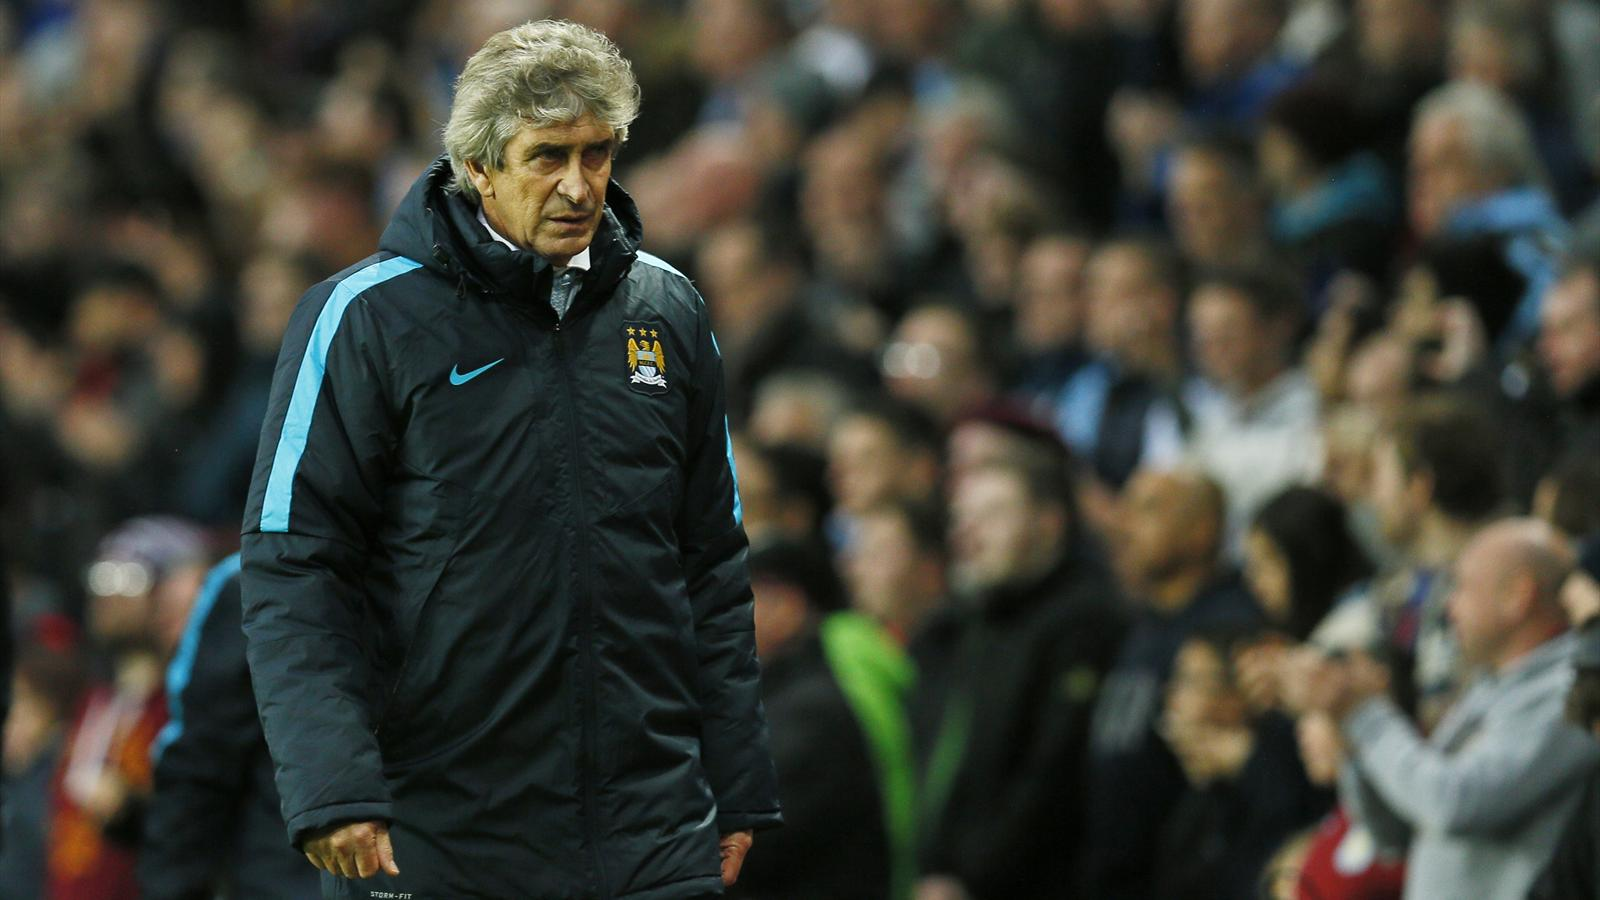 Manchester City manager Manuel Pellegrini during the 4-1 defeat to Liverpool